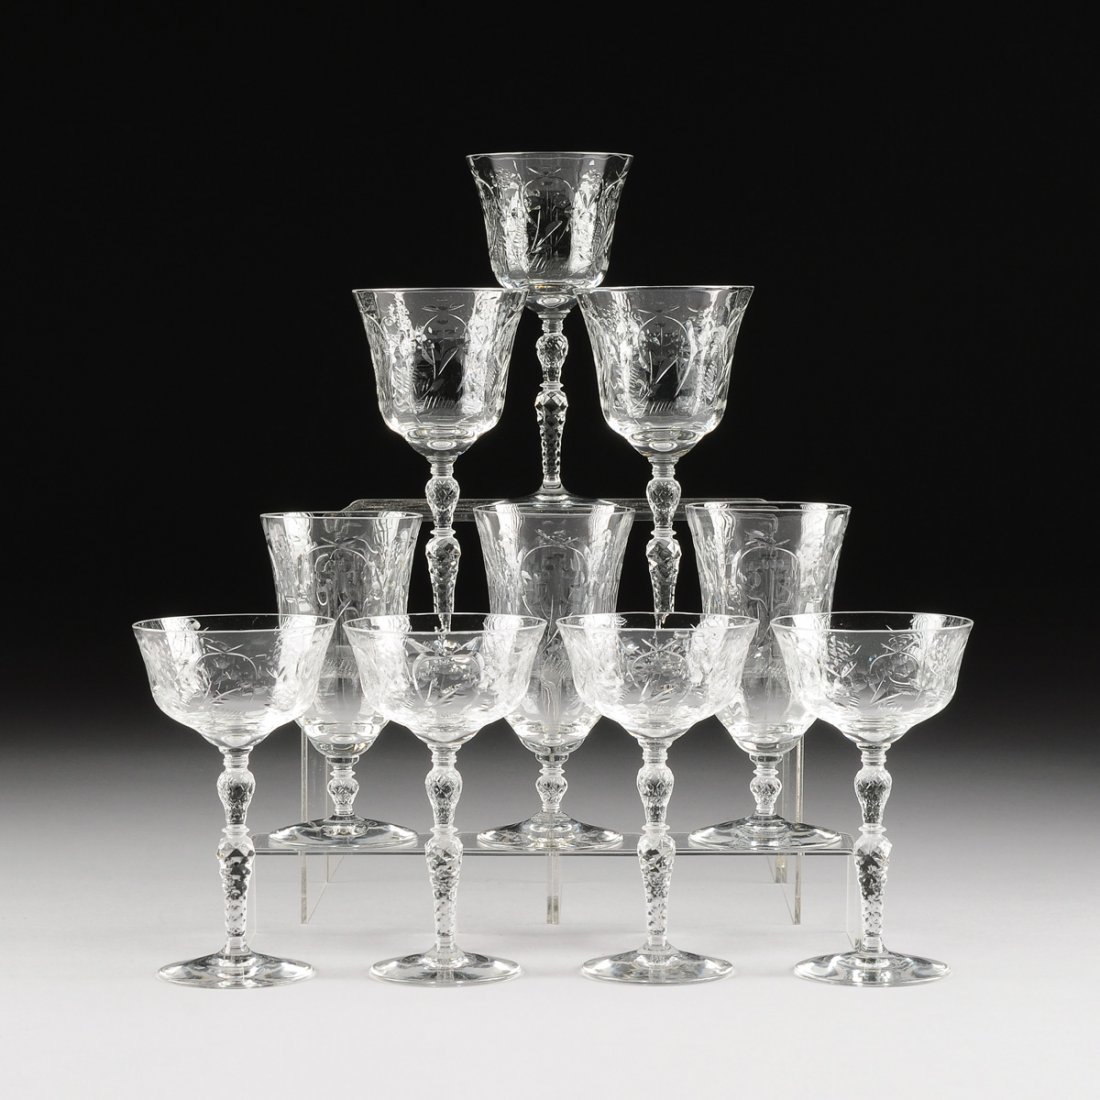 A GROUP OF TWENTY-SIX CONTINENTAL CUT AND ENGRAVED